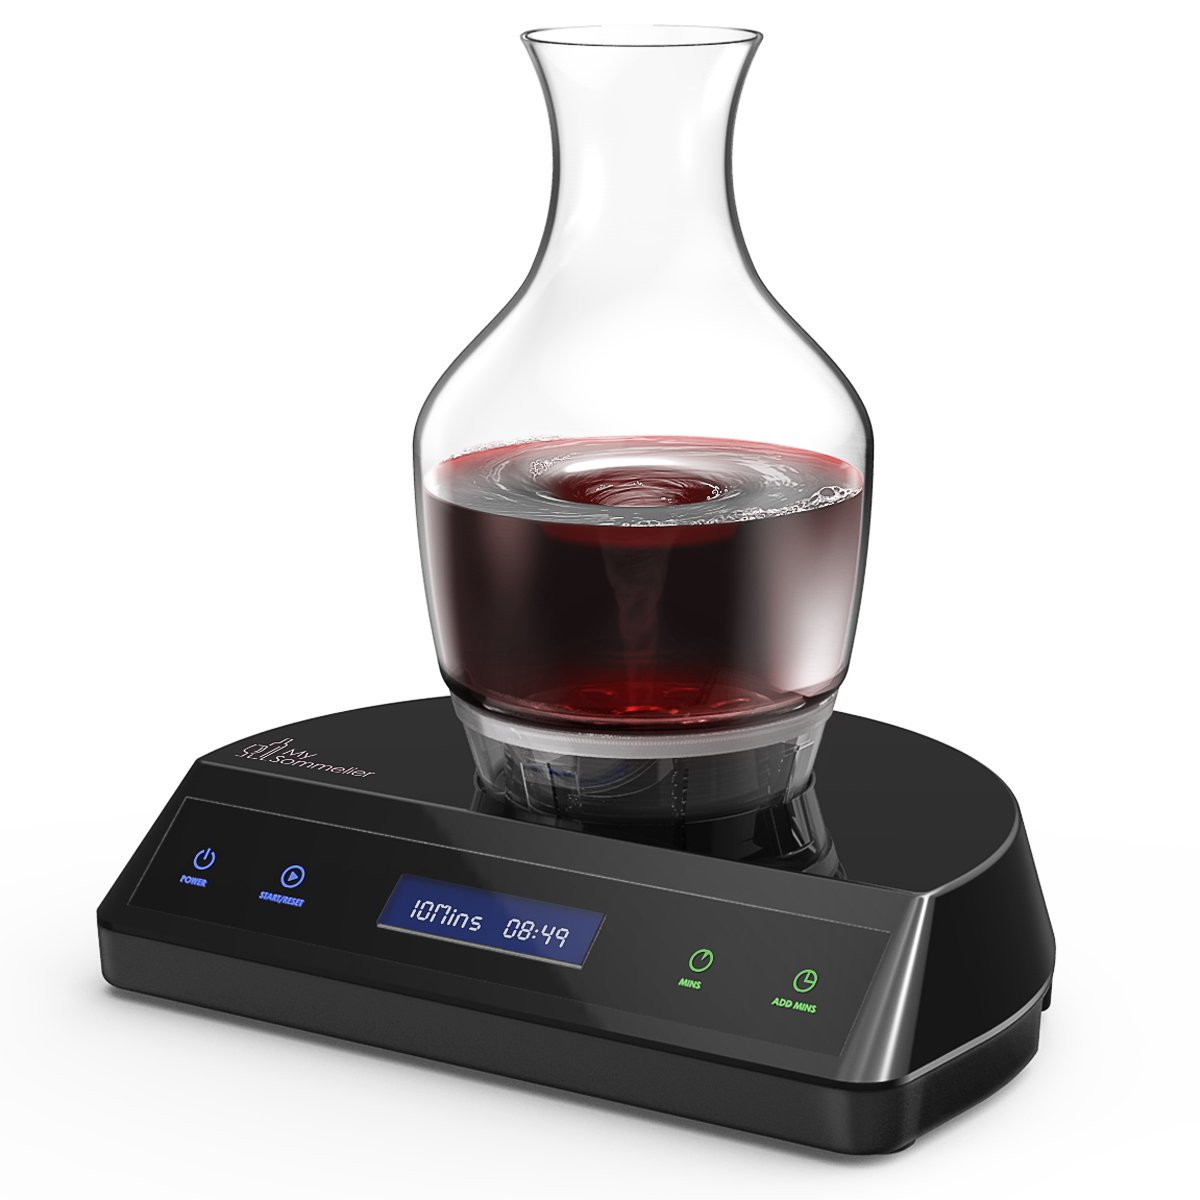 HUMBEE Chef My Sommelier Electric Wine Aerating Decanter, Black